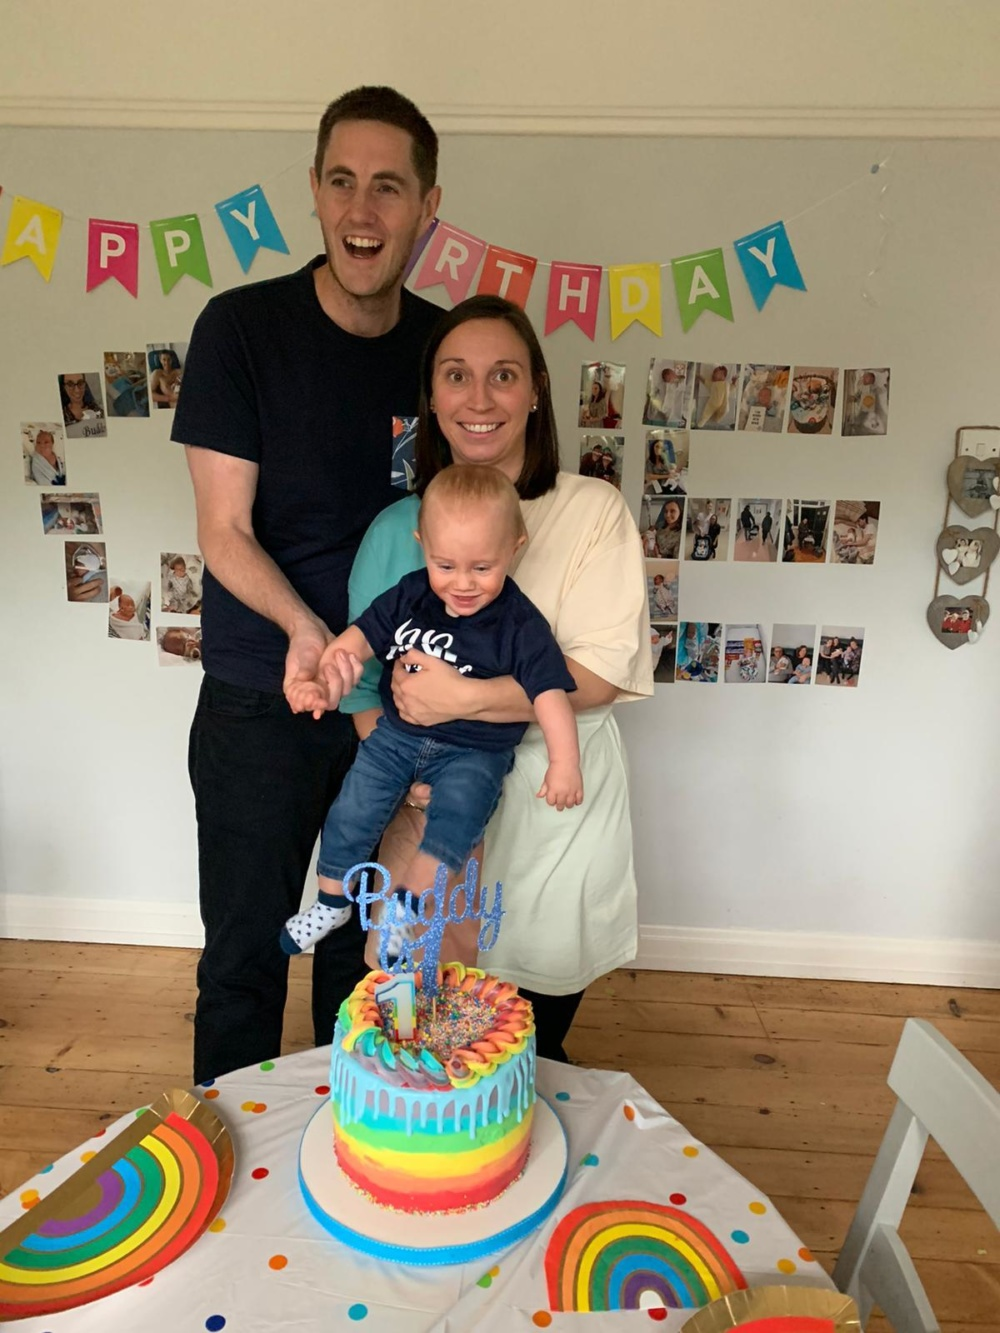 Buddy, celebrating his birthday with parents Paul and Rachel